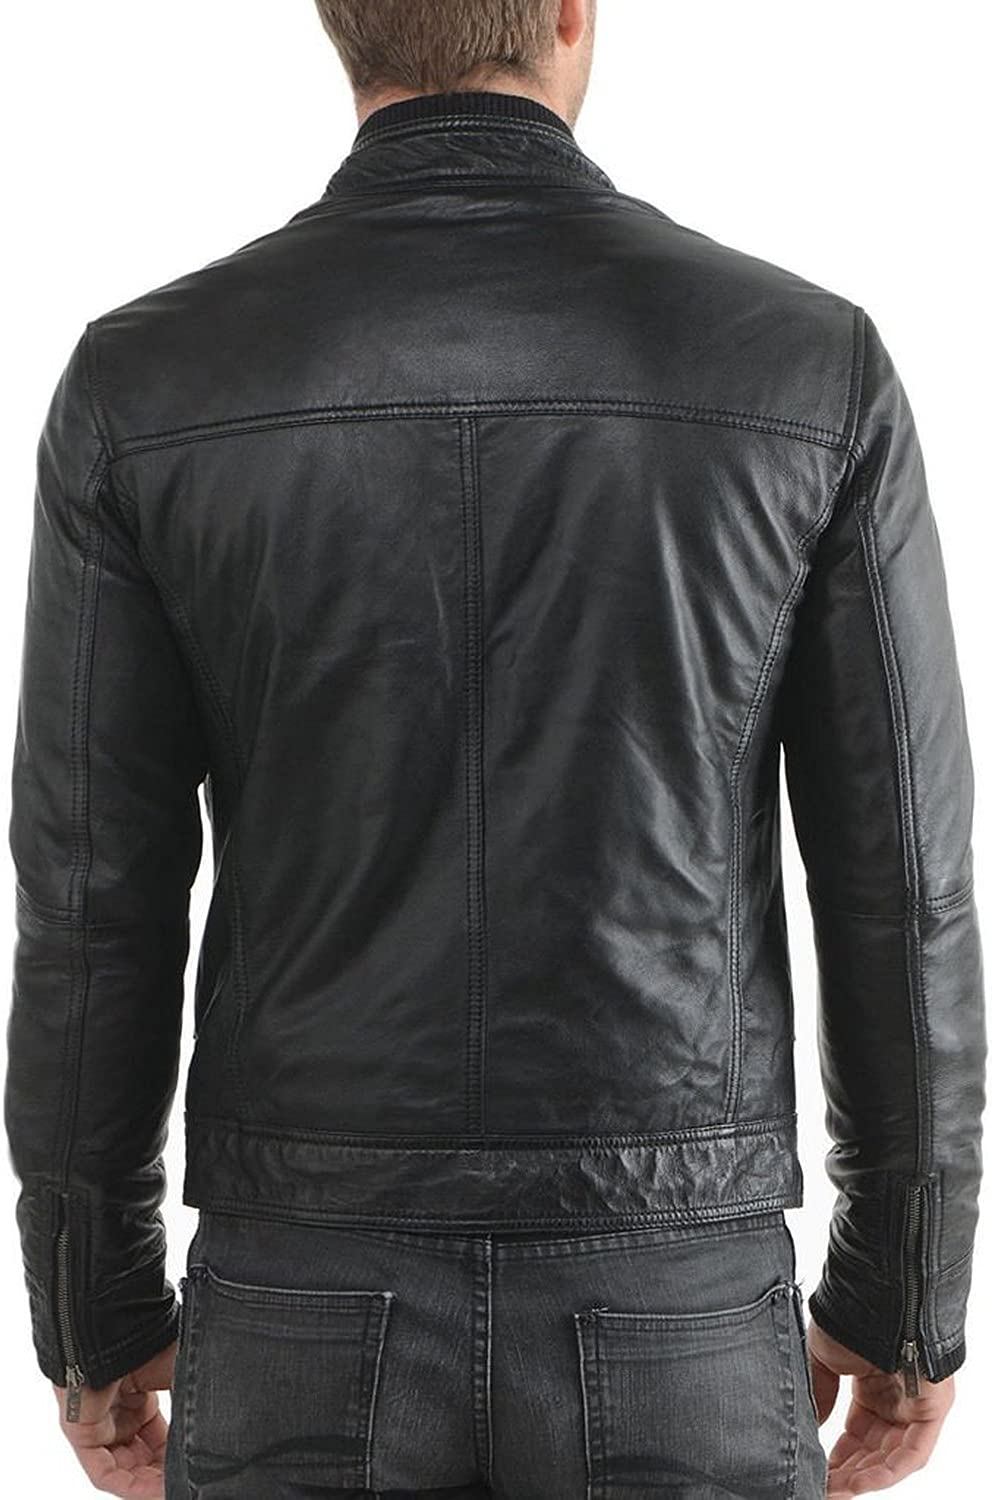 New Men Quilted Leather Jacket Soft Cow Leather Biker Bomber LFC742 XXL